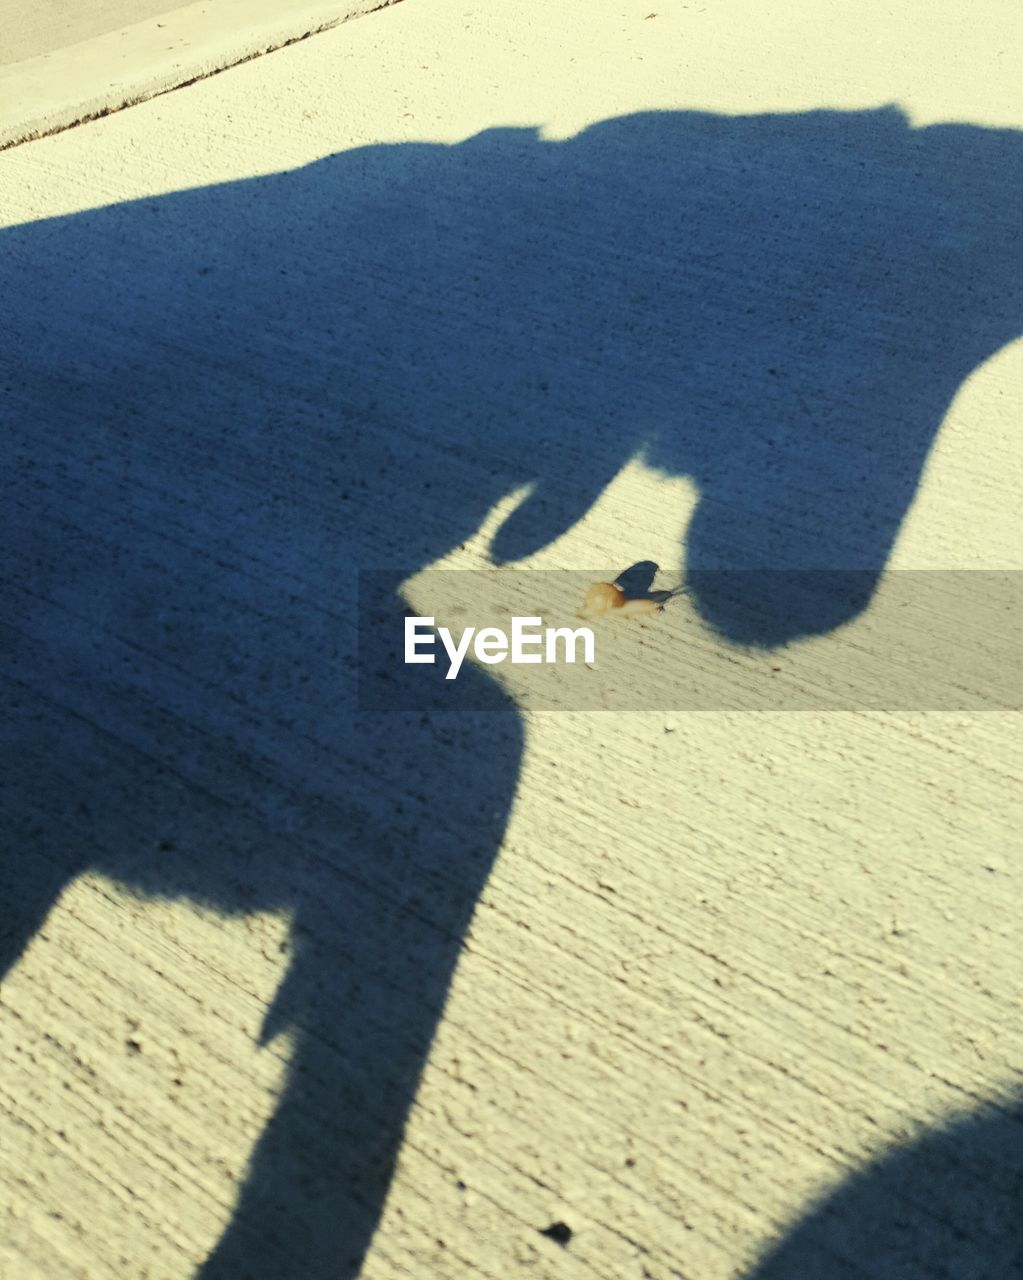 shadow, sunlight, focus on shadow, high angle view, day, real people, sand, sunny, outdoors, leisure activity, nature, animal themes, togetherness, bird, mammal, people